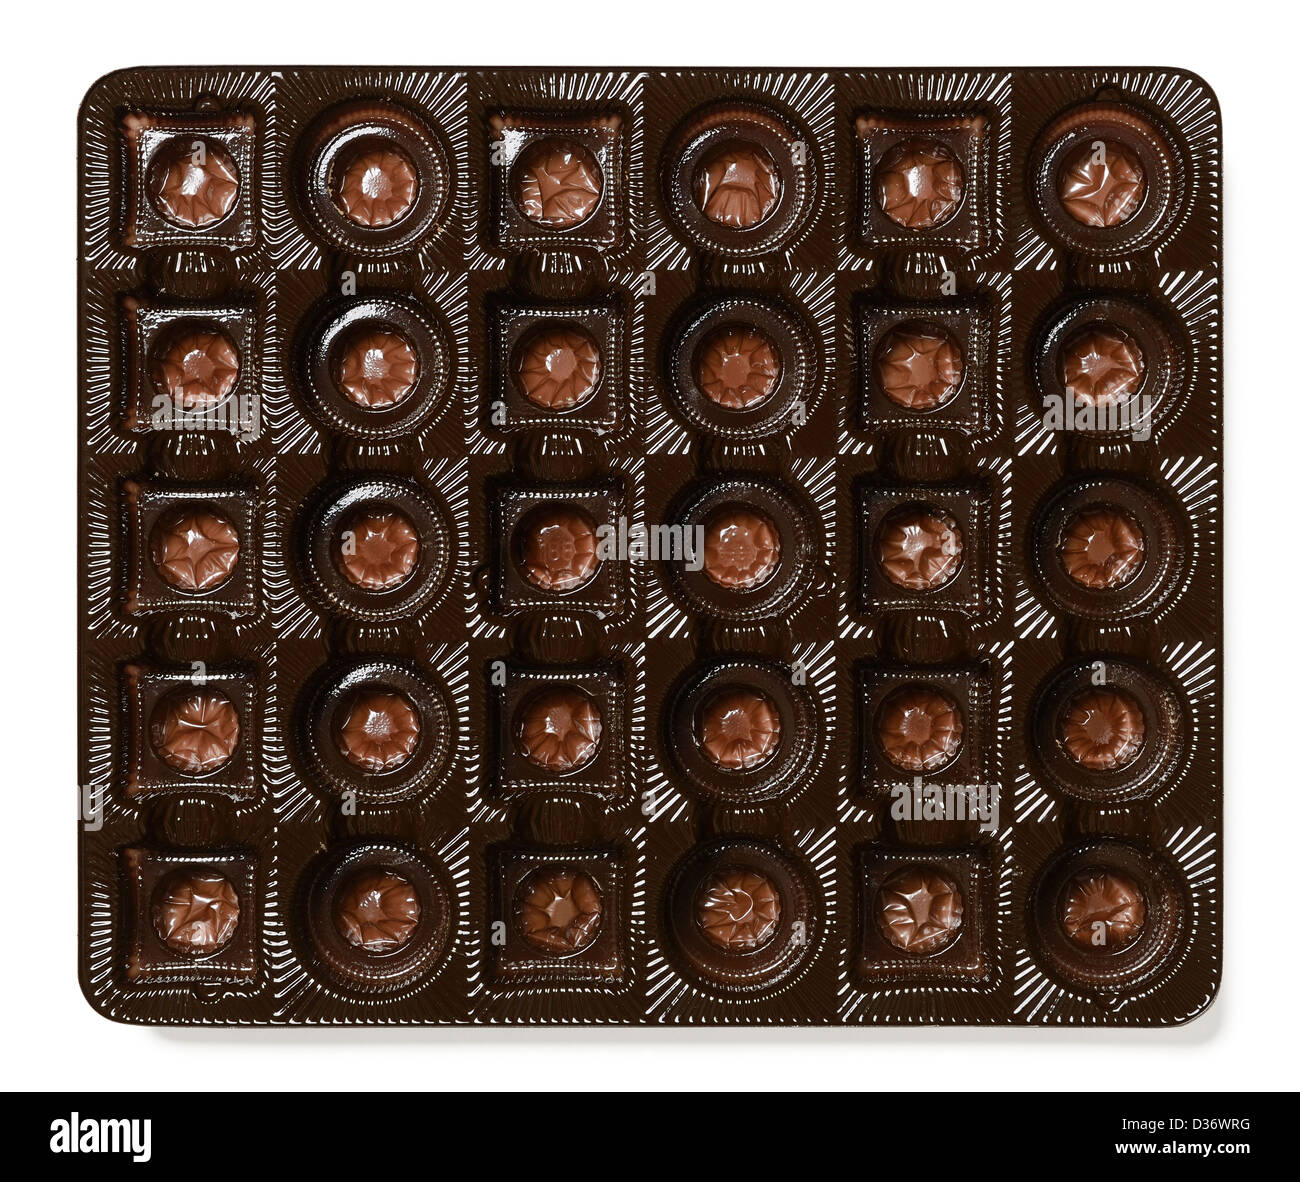 Plastic tray from a box of chocolates - Stock Image